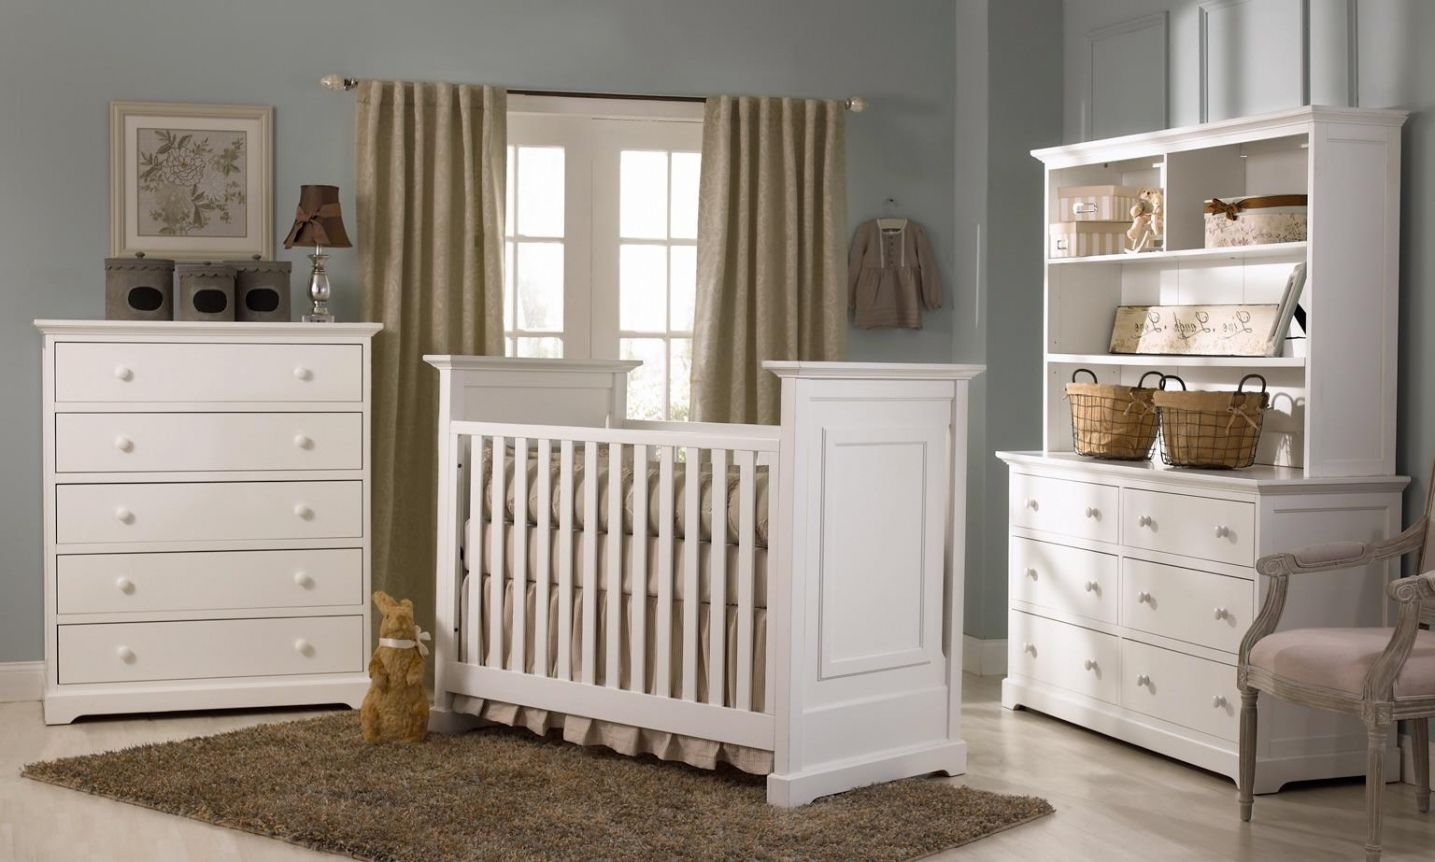 2019 Baby Boy Room With White Furniture Organizing Ideas For Bedrooms Check More At Htt Nursery Furniture Sets White White Nursery Furniture Nursery Room Boy